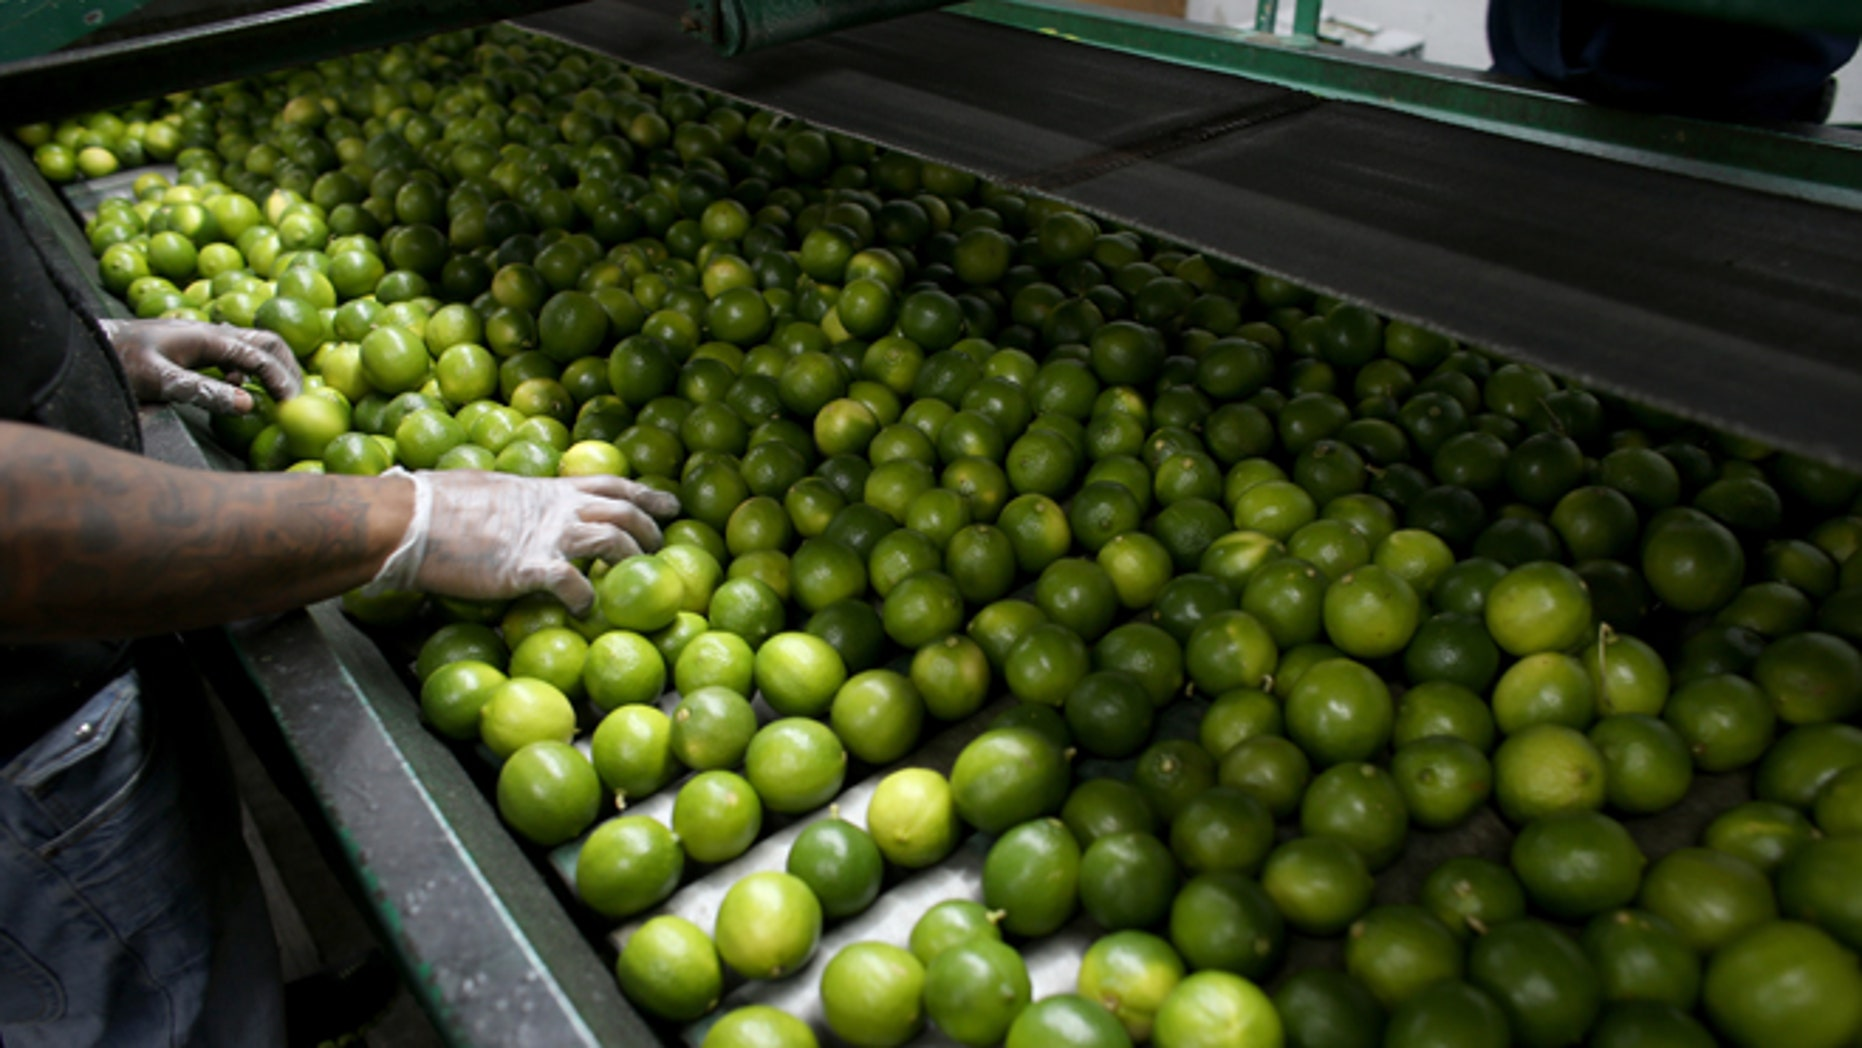 MIAMI, FL - MARCH 26:  Dairoby Aldana sorts limes that have been imported from Columbia at SA Mex produce on March 26, 2014 in Miami, Florida. Samuel Rosales from the produce company said they hadn't received any lime imports from Mexico for the last three days as a tight supply in Mexico has driven up the availability as well as the prices for the citrus in the United States.  (Photo by Joe Raedle/Getty Images)